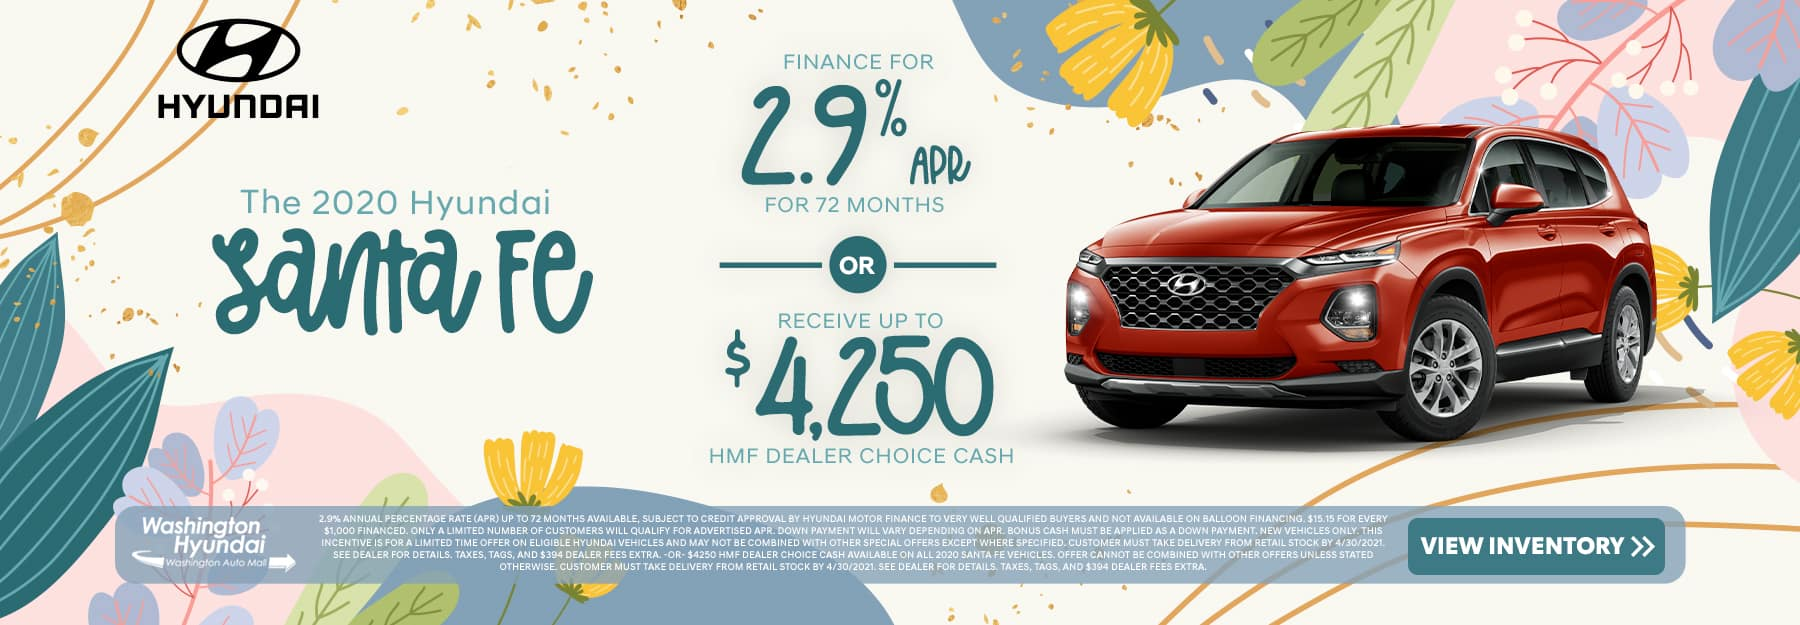 The 2020 Hyundai Santa Fe - Finance for 2.9% APR for 72 months OR receive up to $4,250 dealer choice cash!